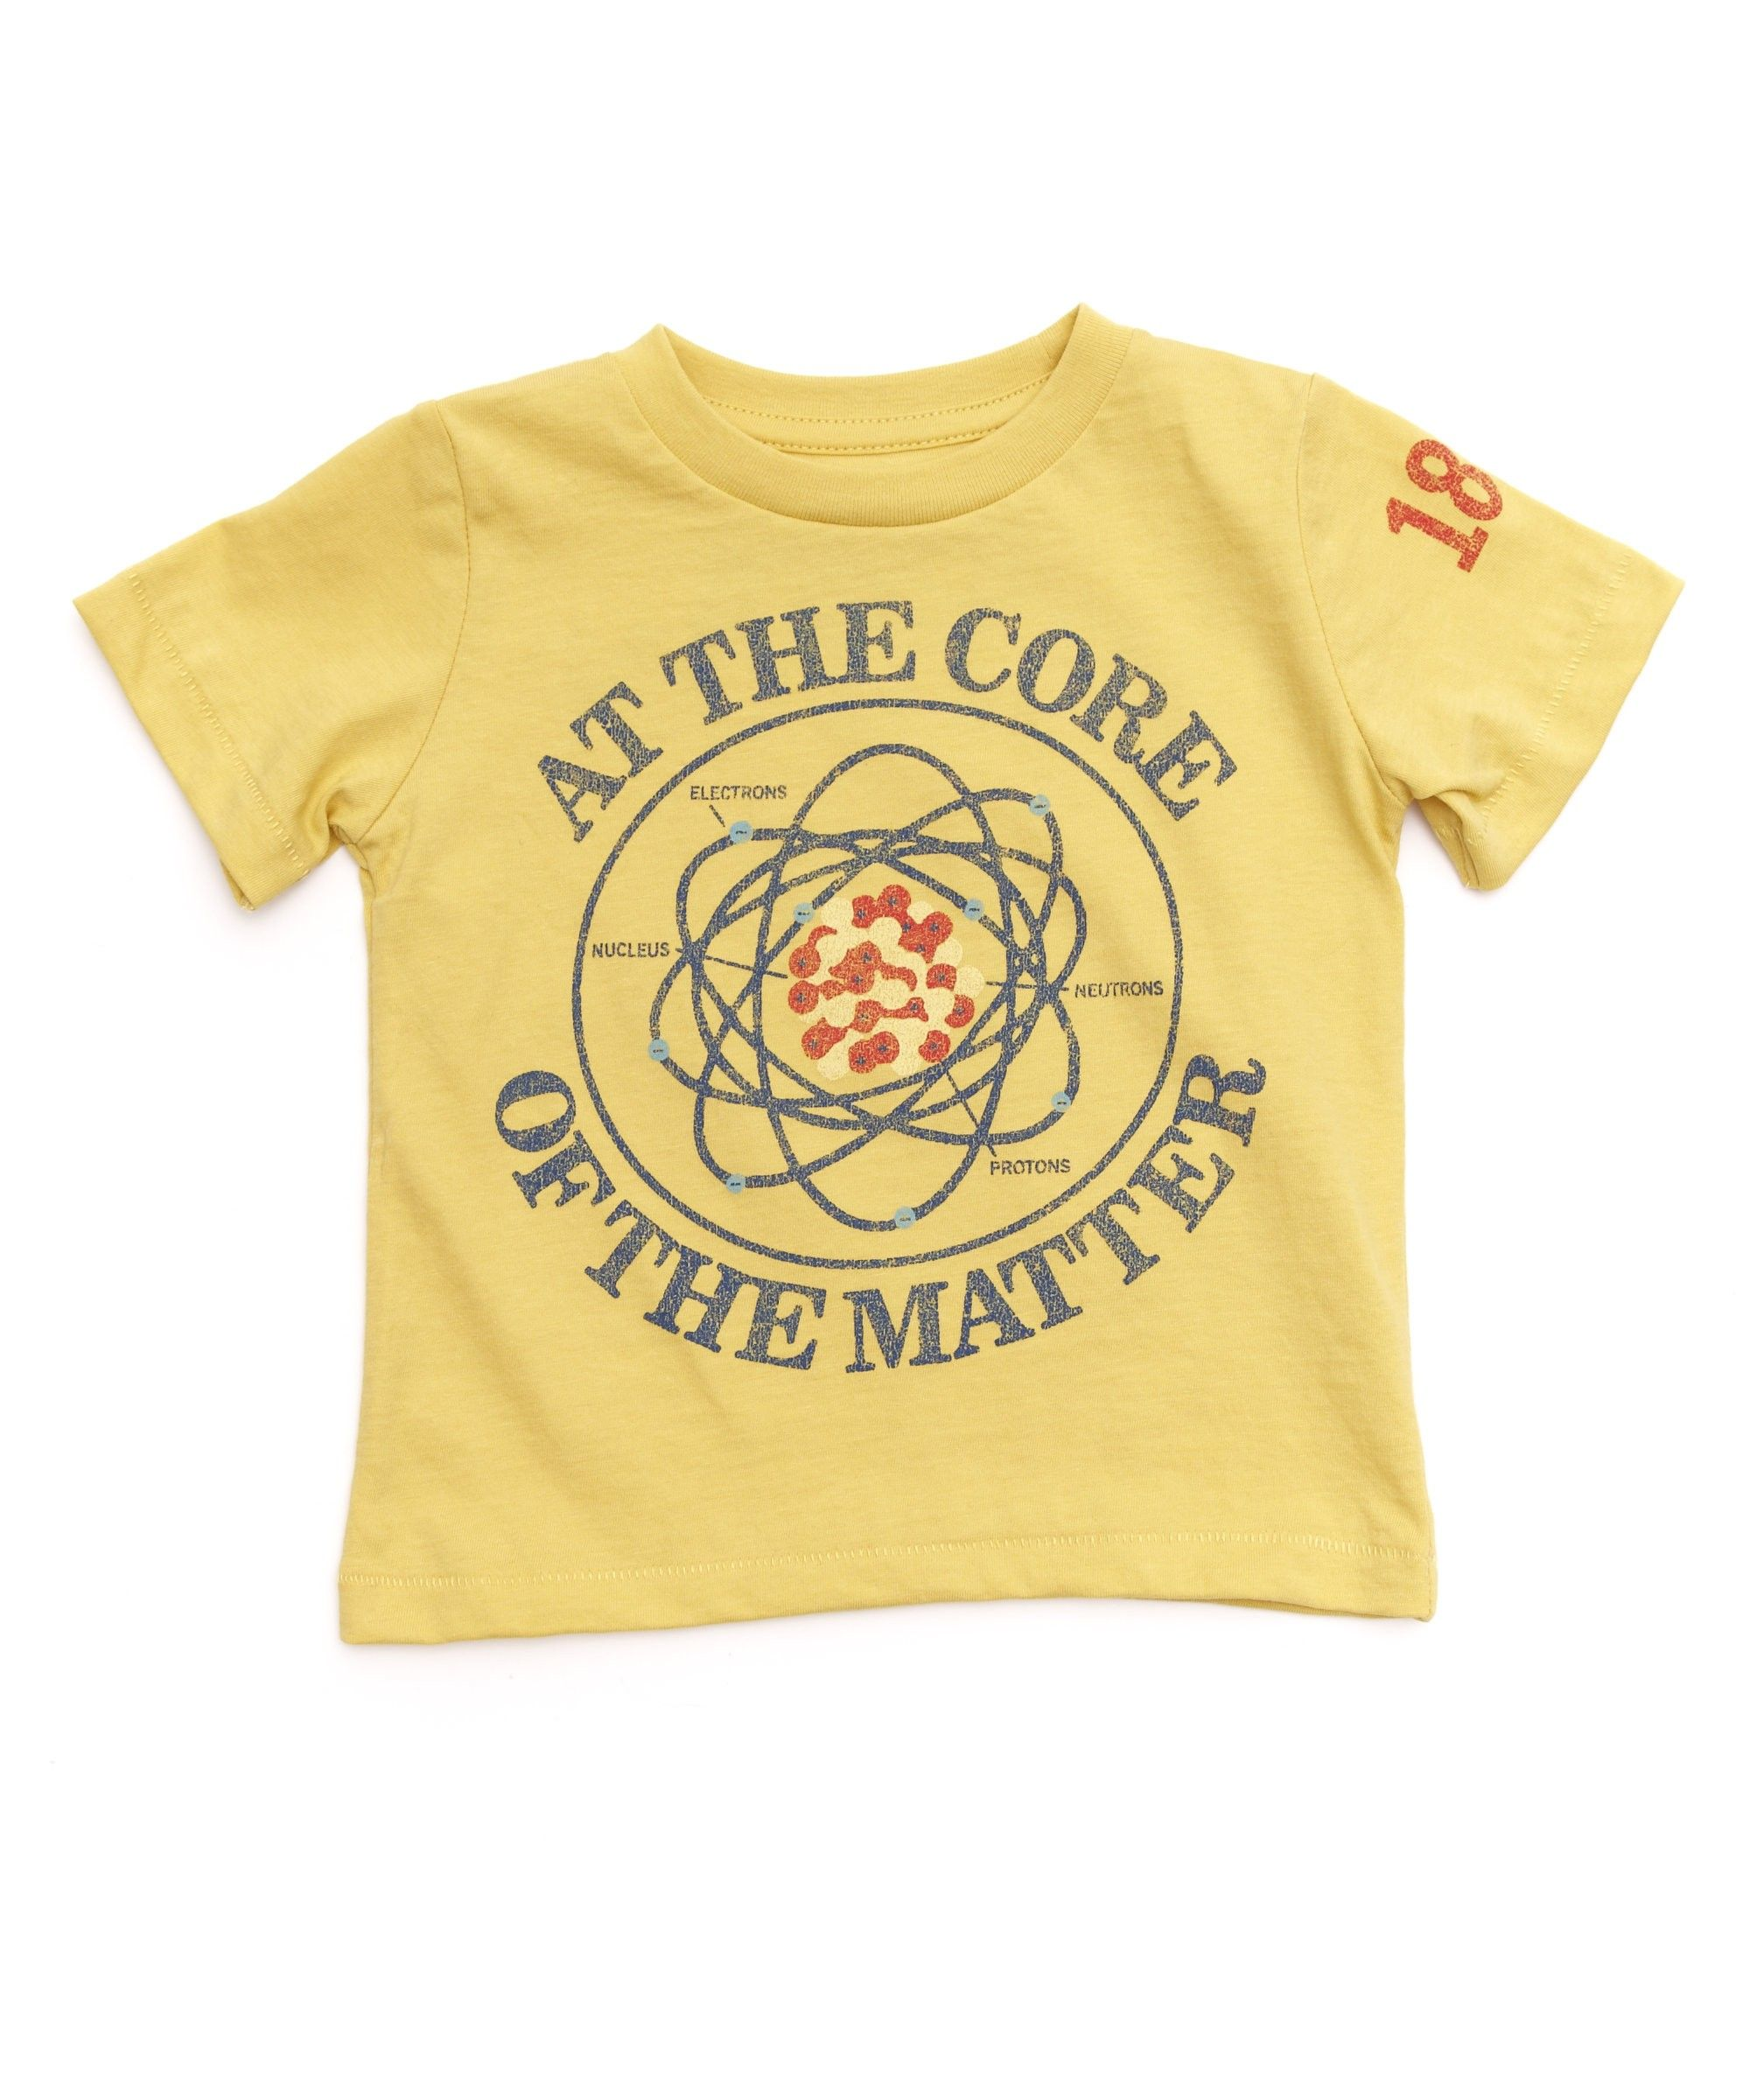 Baby Core of the Atom Tee. For the cutest little nerdy :)